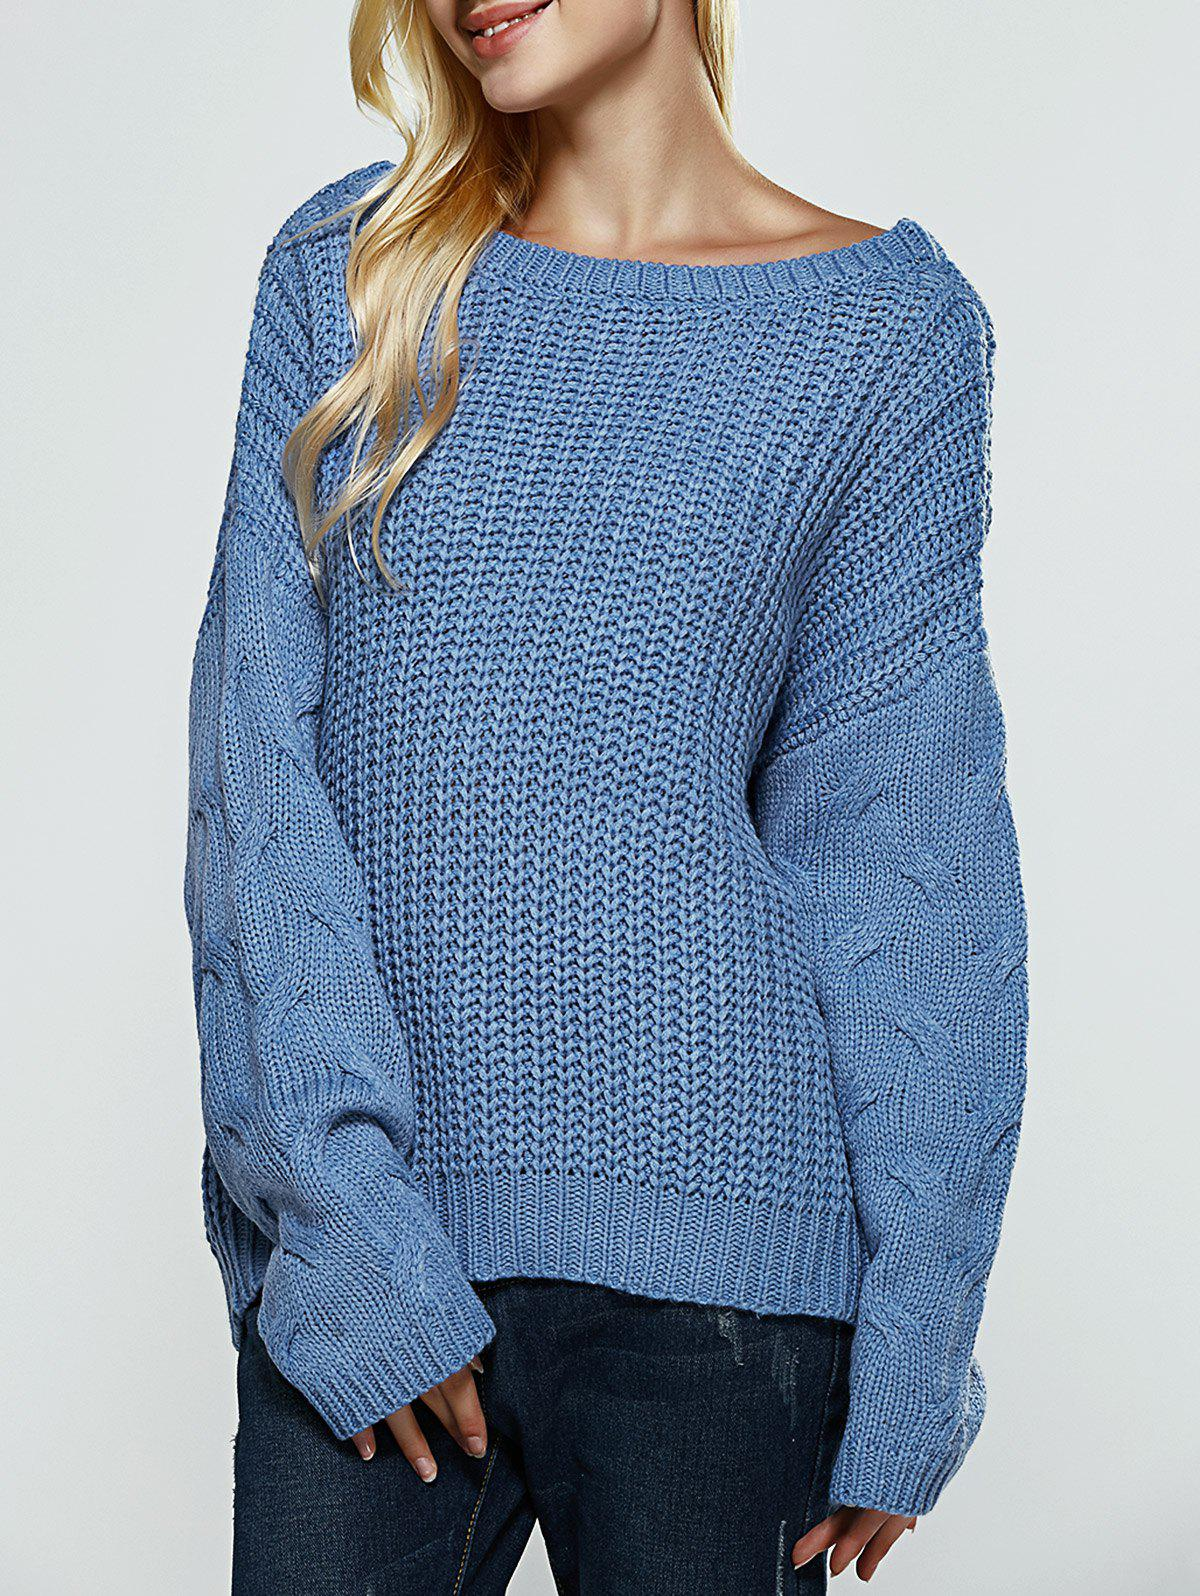 Chic Textured Slit Open Back Sweater